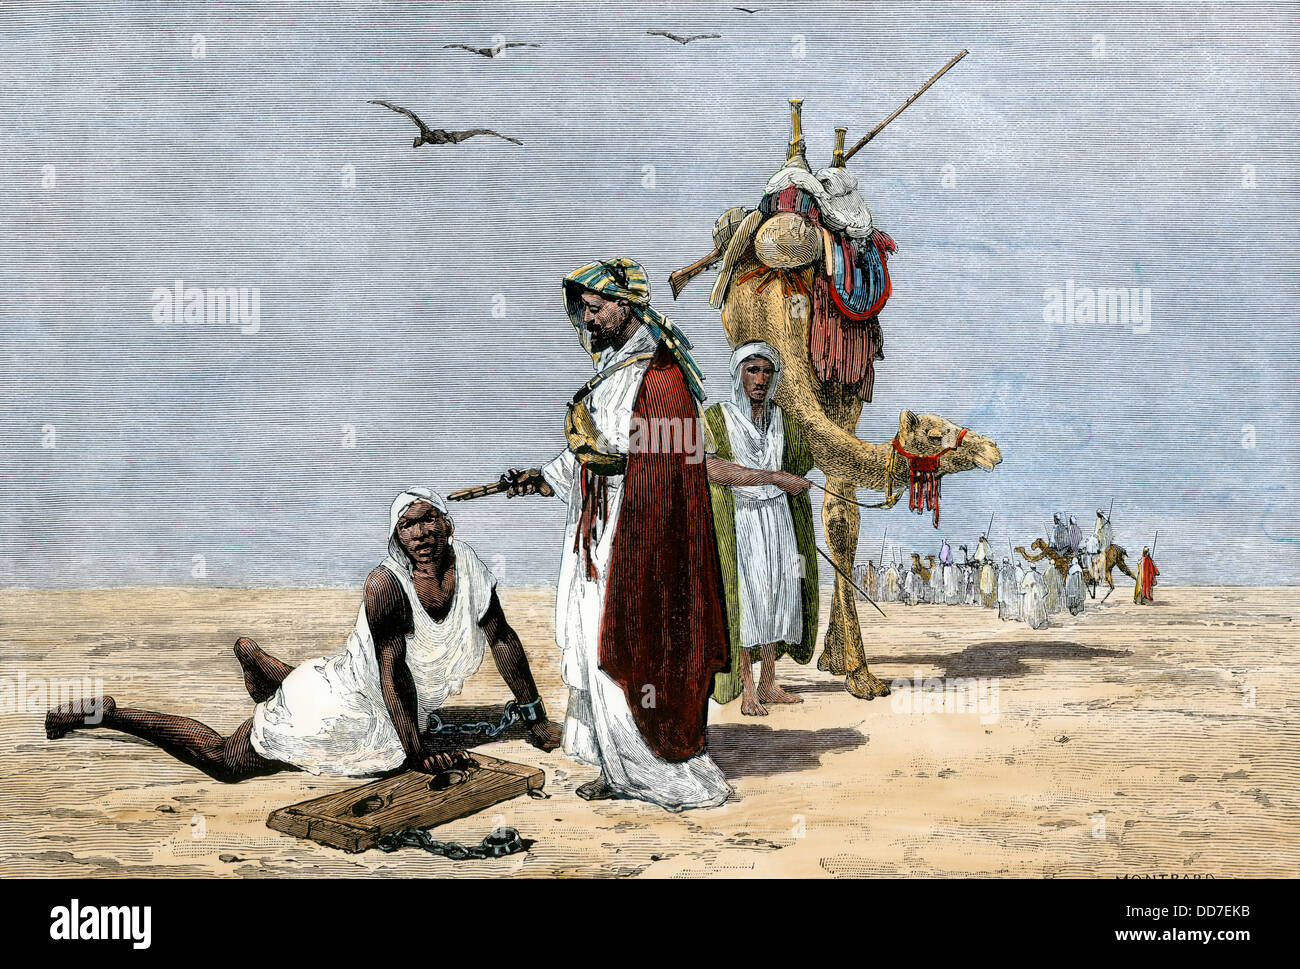 arab-slave-trader-shooting-an-exhausted-slave-in-the-african-desert-DD7EKB.jpg